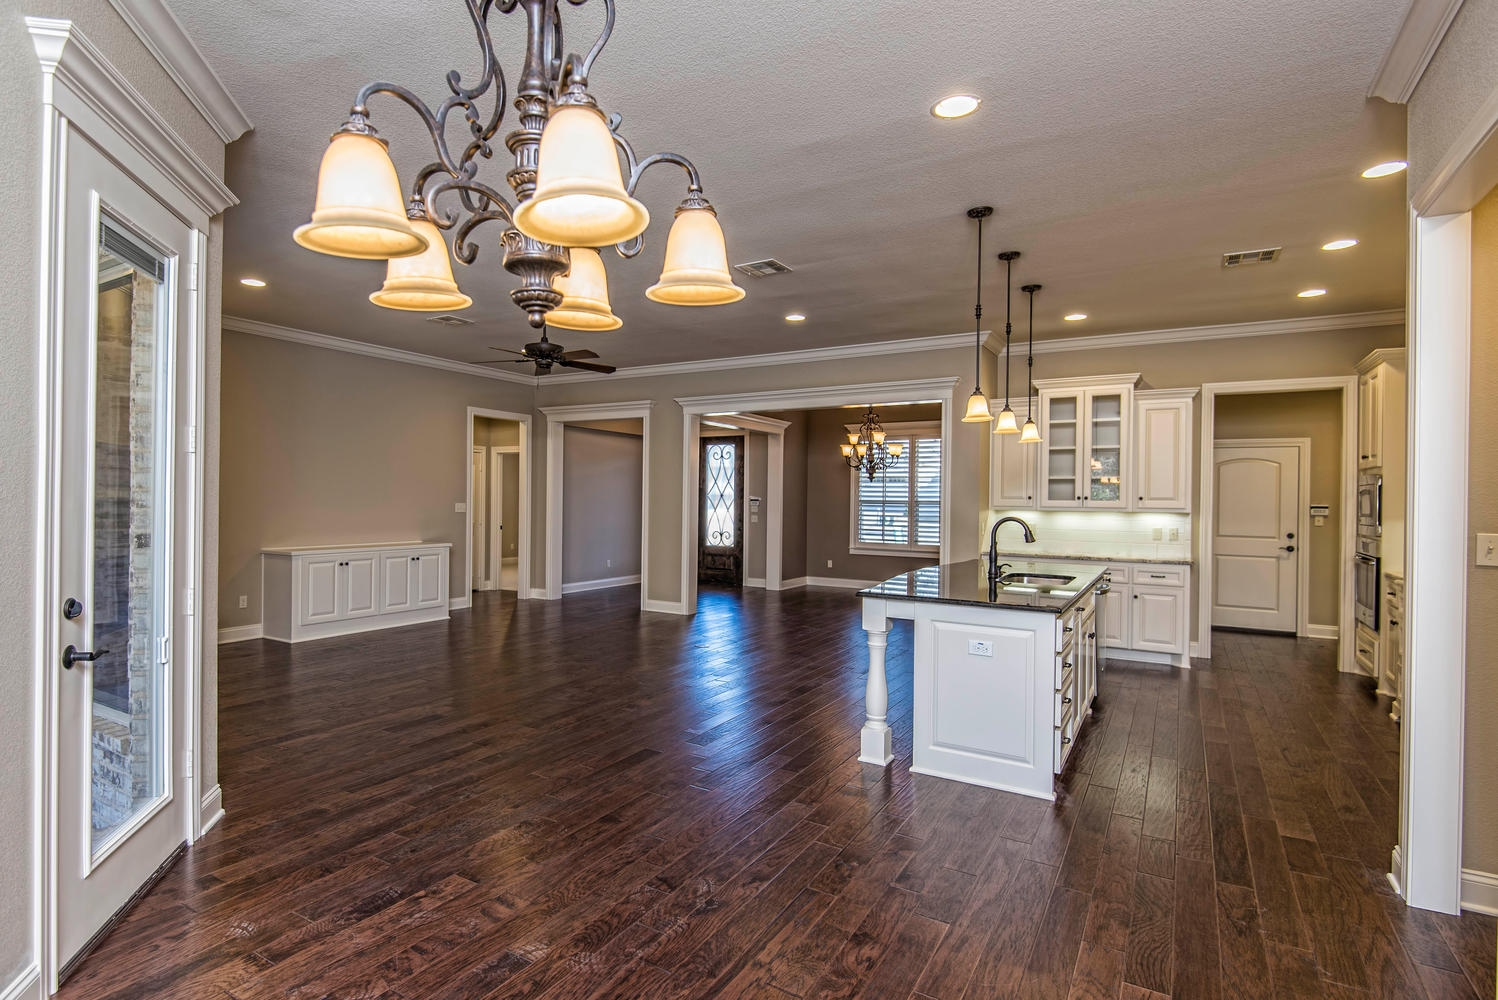 4809 Lochinvar 342000 Waco TX-large-009-9-View of Living Areas-1498x1000-72dpi